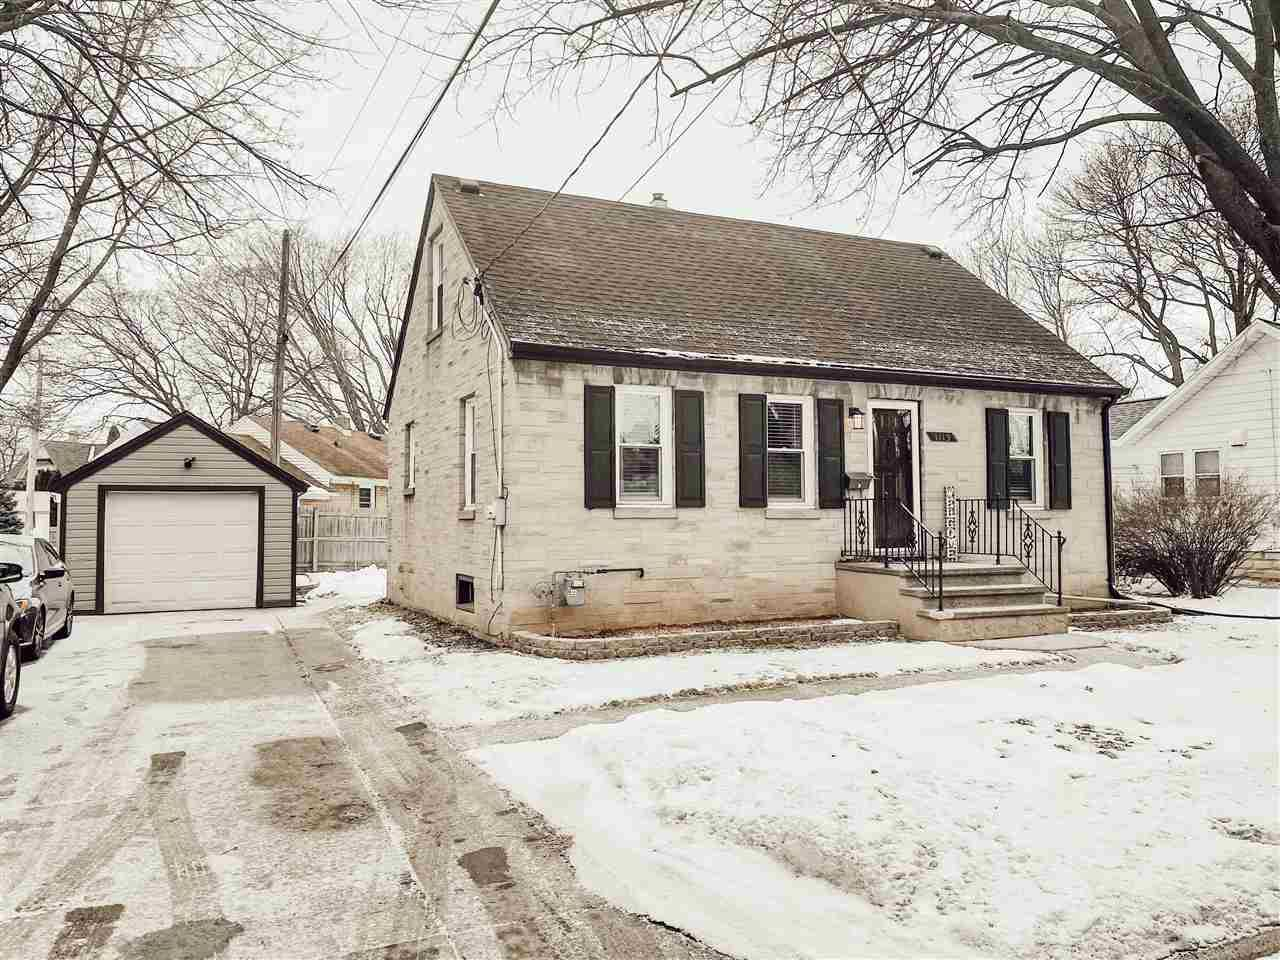 1113 N LINWOOD Avenue, Appleton, WI 54914 - MLS#: 50234572